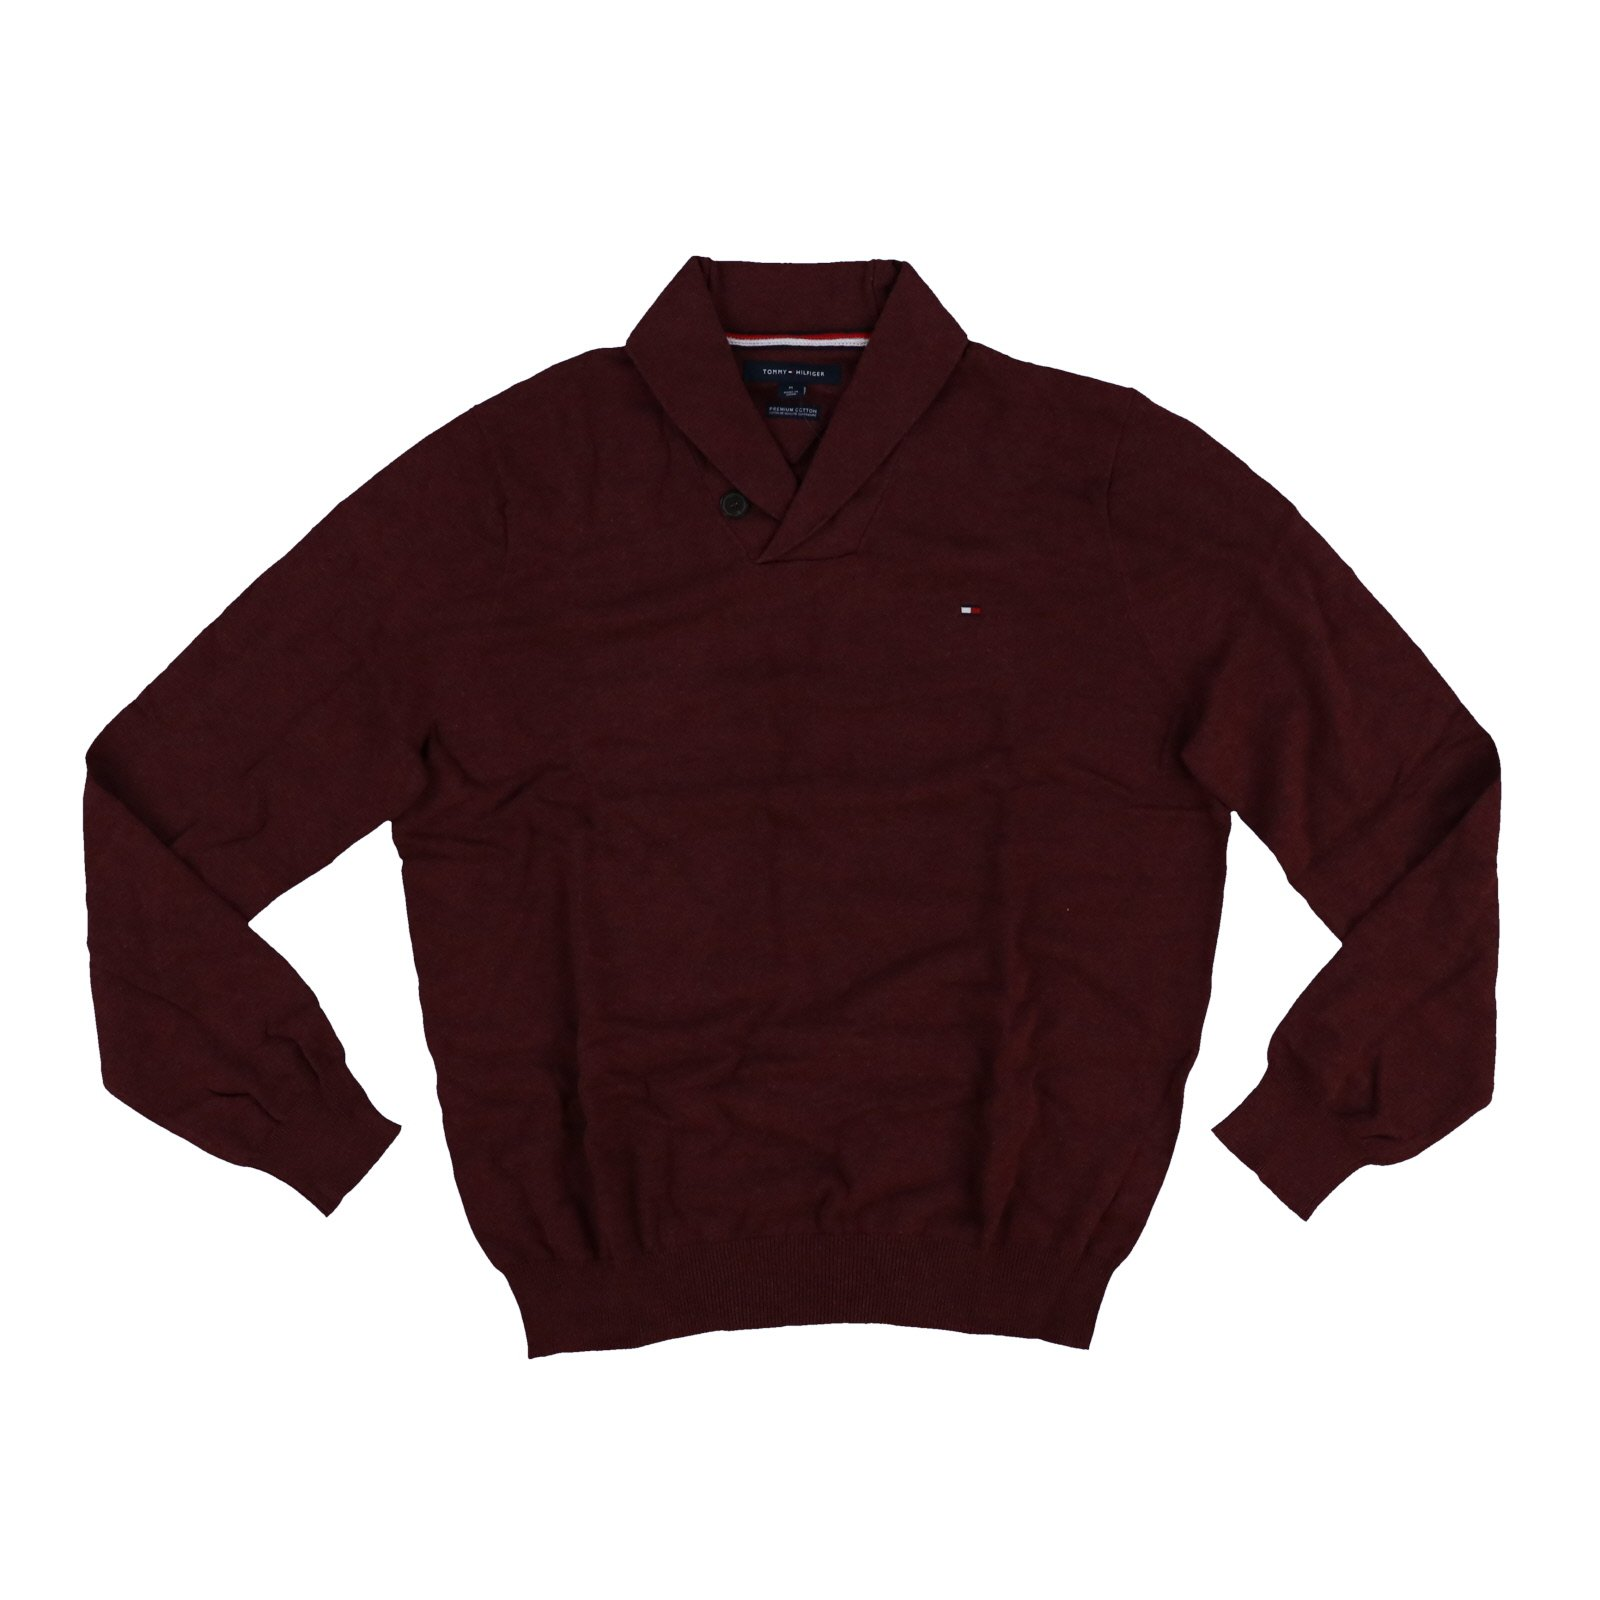 Tommy Hilfiger Mens Premium Cotton Shawl Neck Sweater (Medium, Zinfandel Heather)